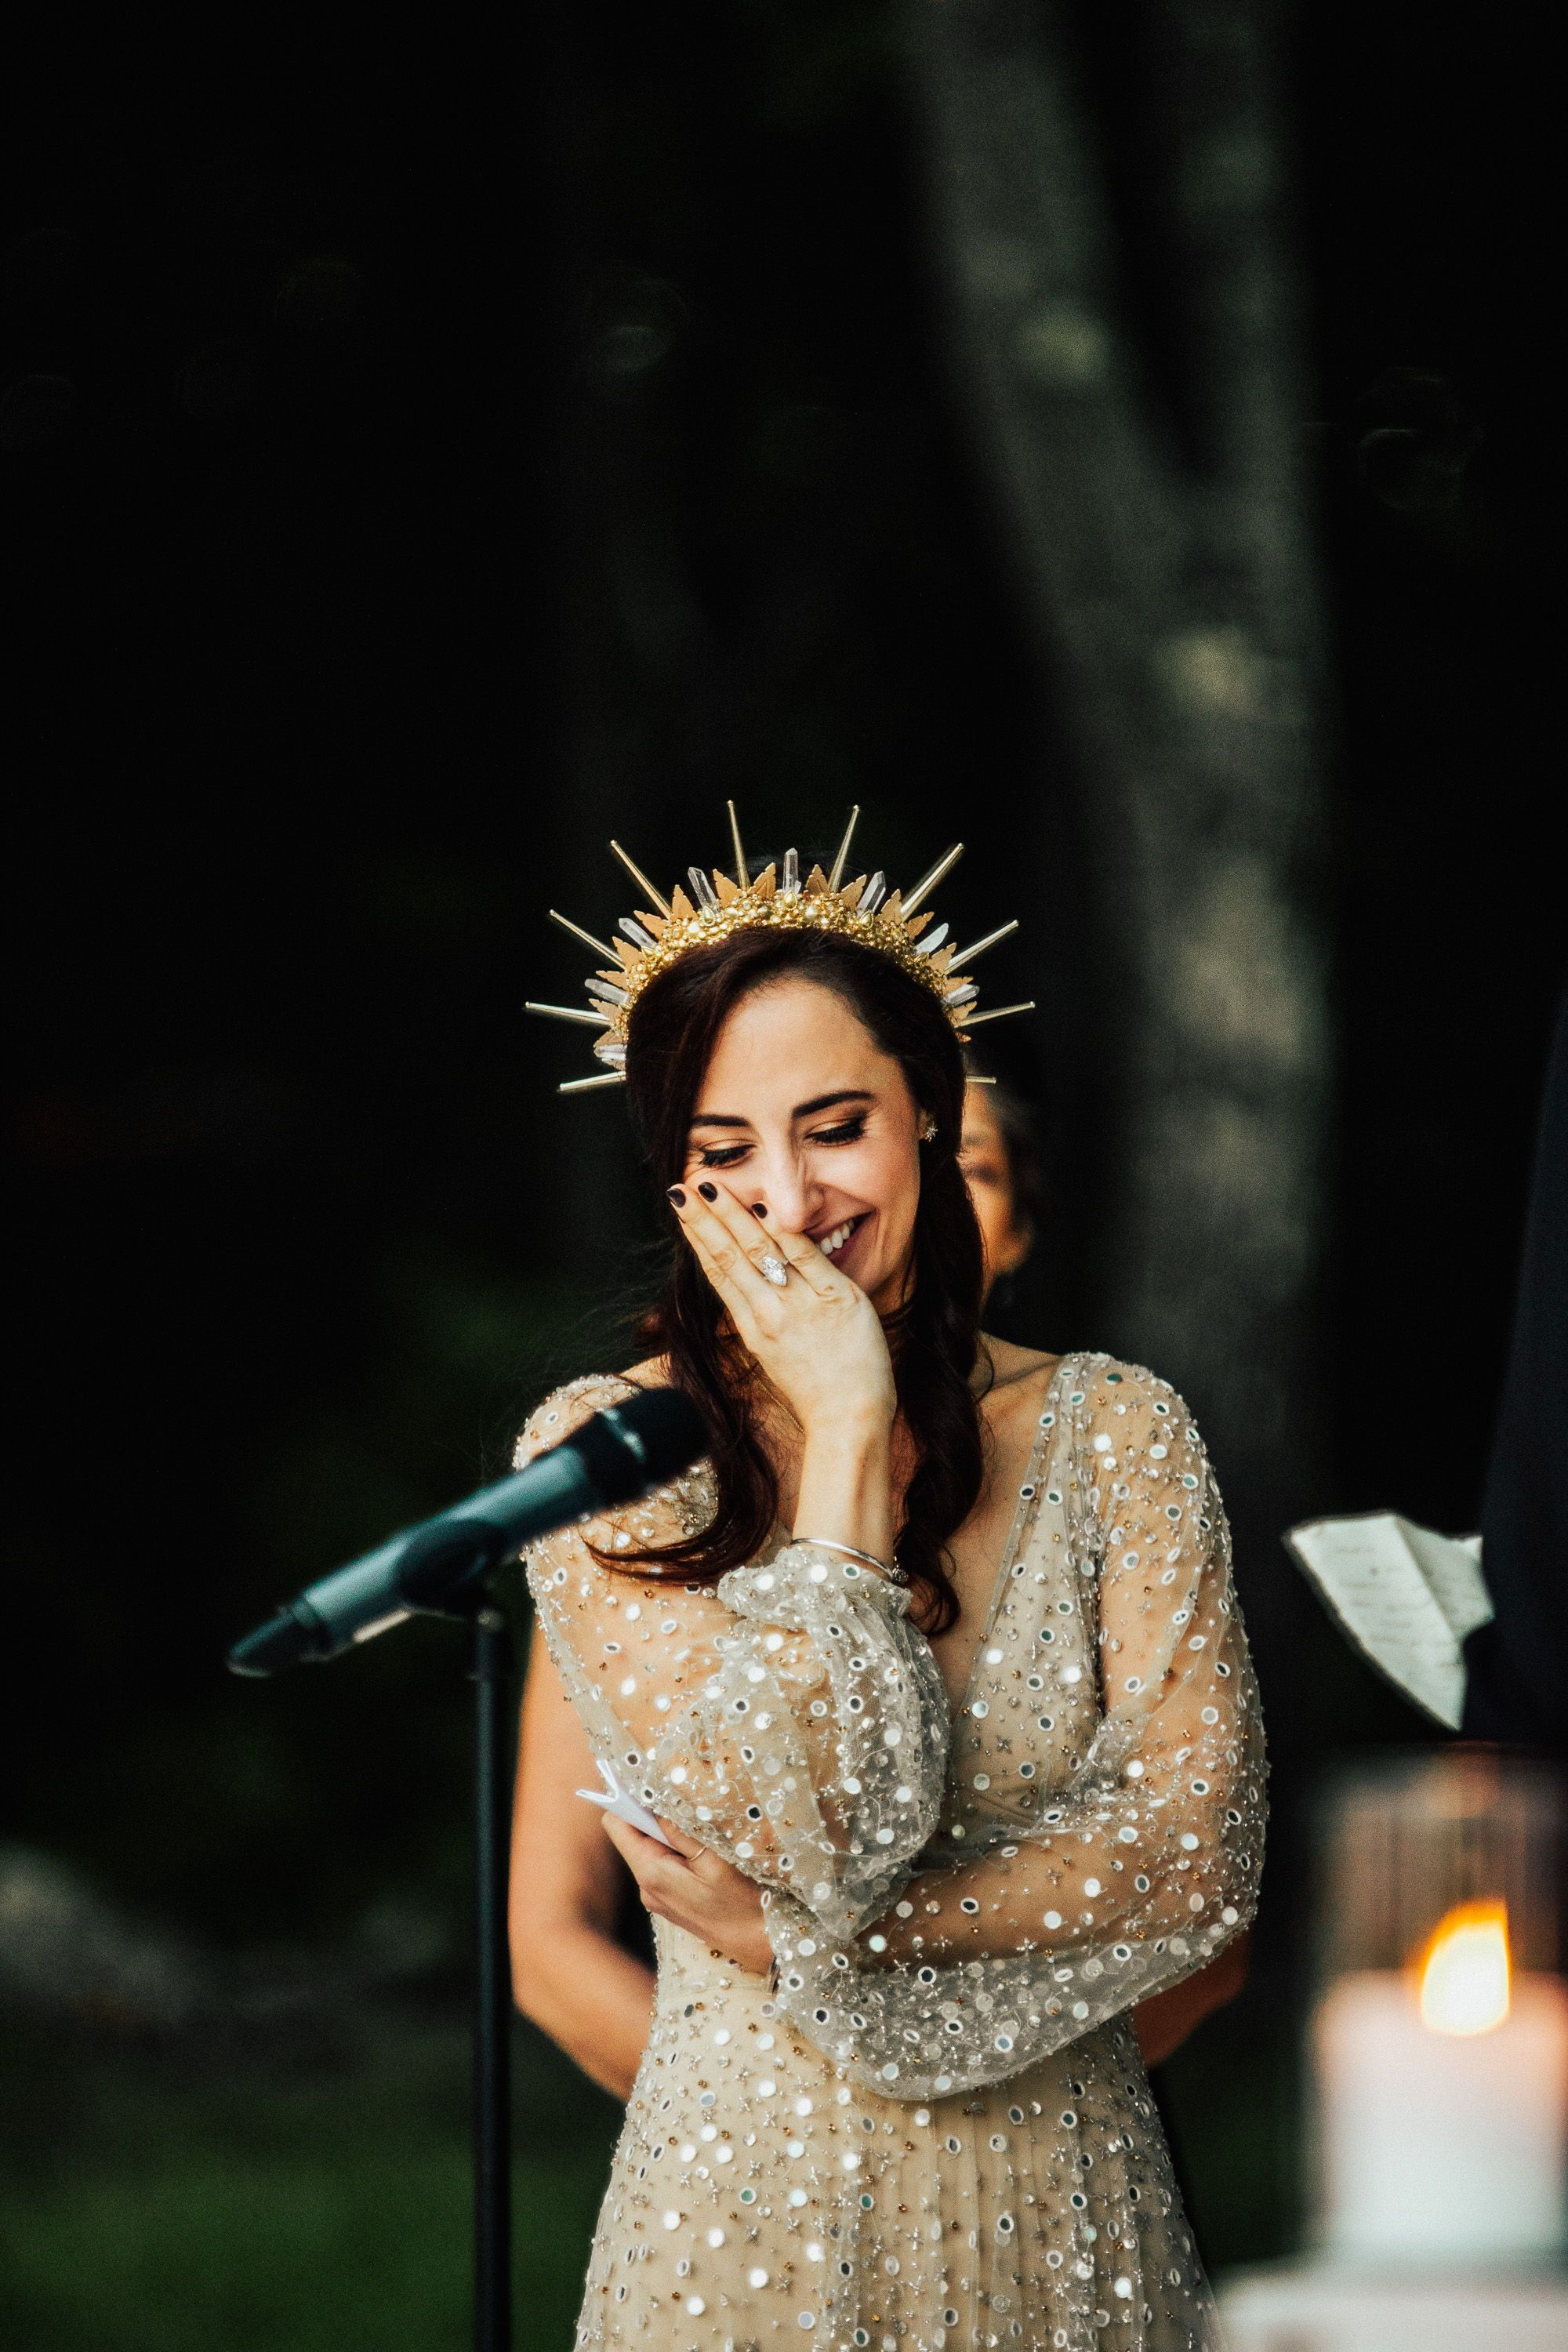 noah + maxine enchanted gothic woodstock vermont wedding